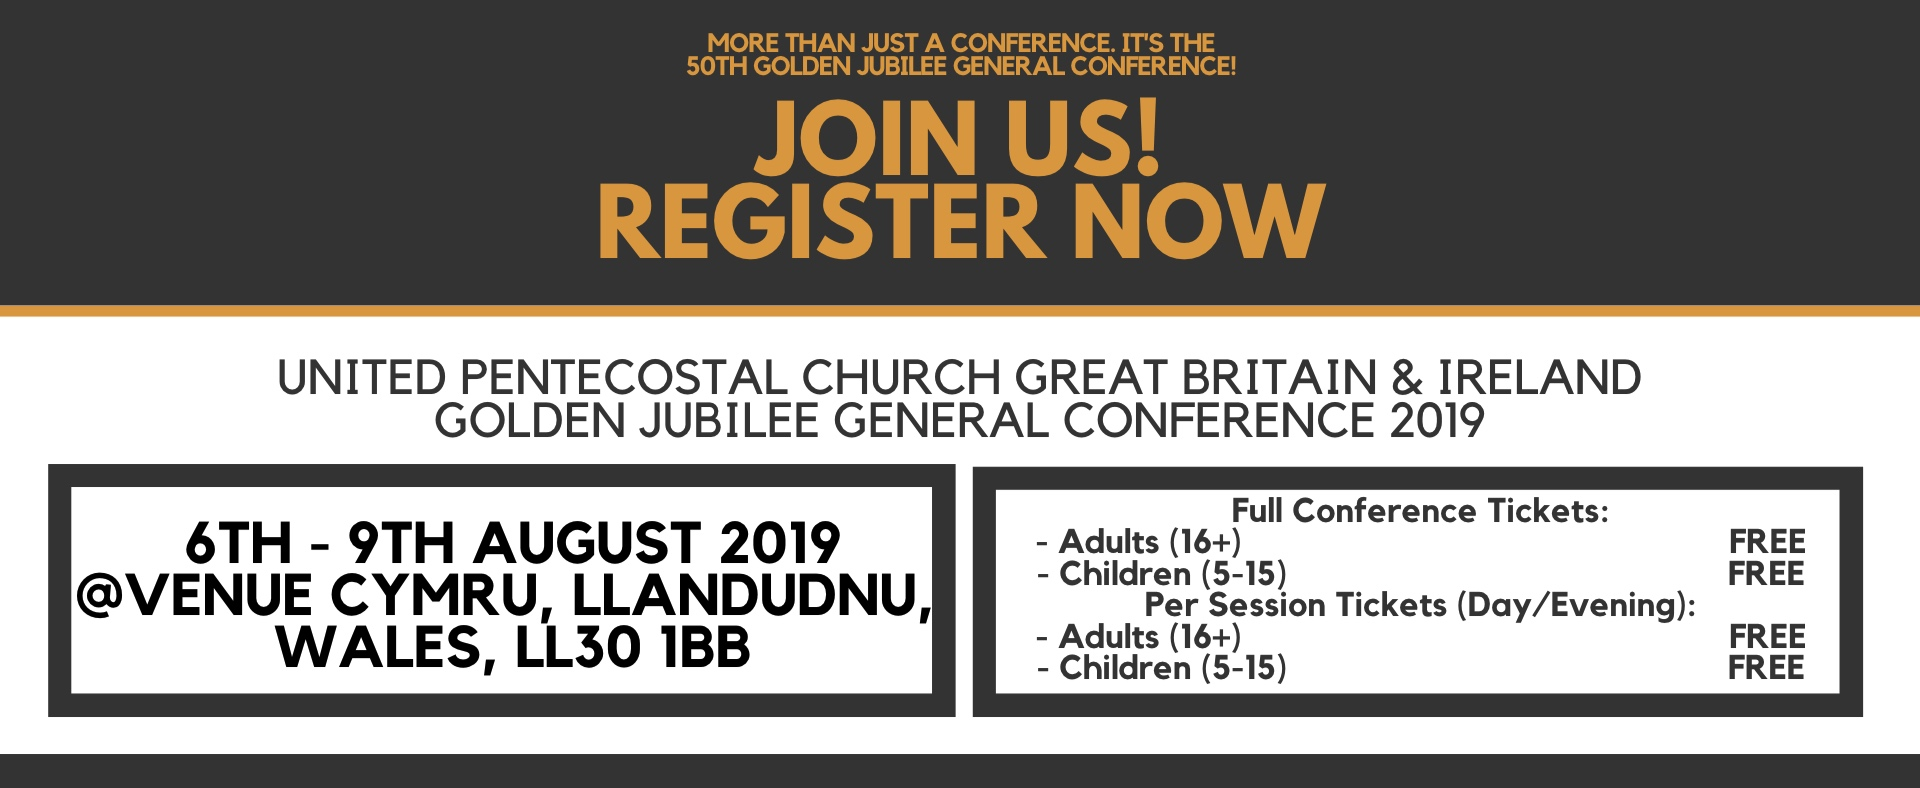 Golden Jubilee General Conference 2019 — United Pentecostal Church GB&I